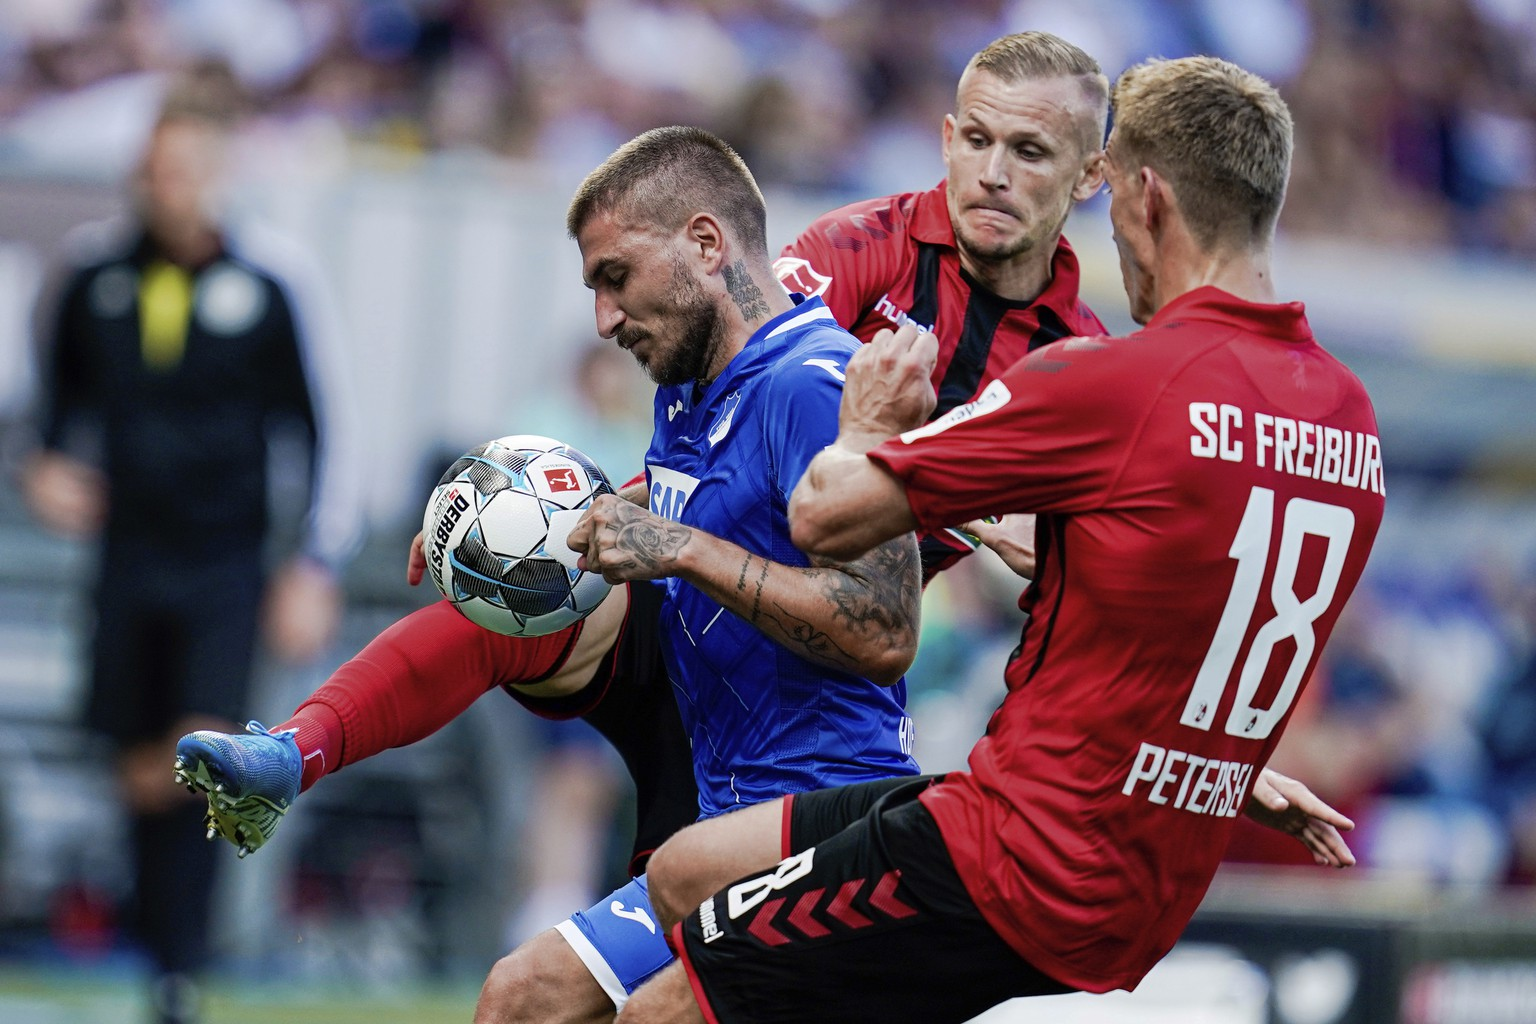 From left, Hoffenheim's Konstantinos Stafylidis challenges for the ball with Freiburg's Jonathan Schmid and Nils Petersen during the German Bundesliga soccer match between TSG 1899 Hoffenheim and SC Freiburg in Sinsheim, Germany, Sunday, Sept, 15, 2019. (Uwe Anspach/dpa via AP)